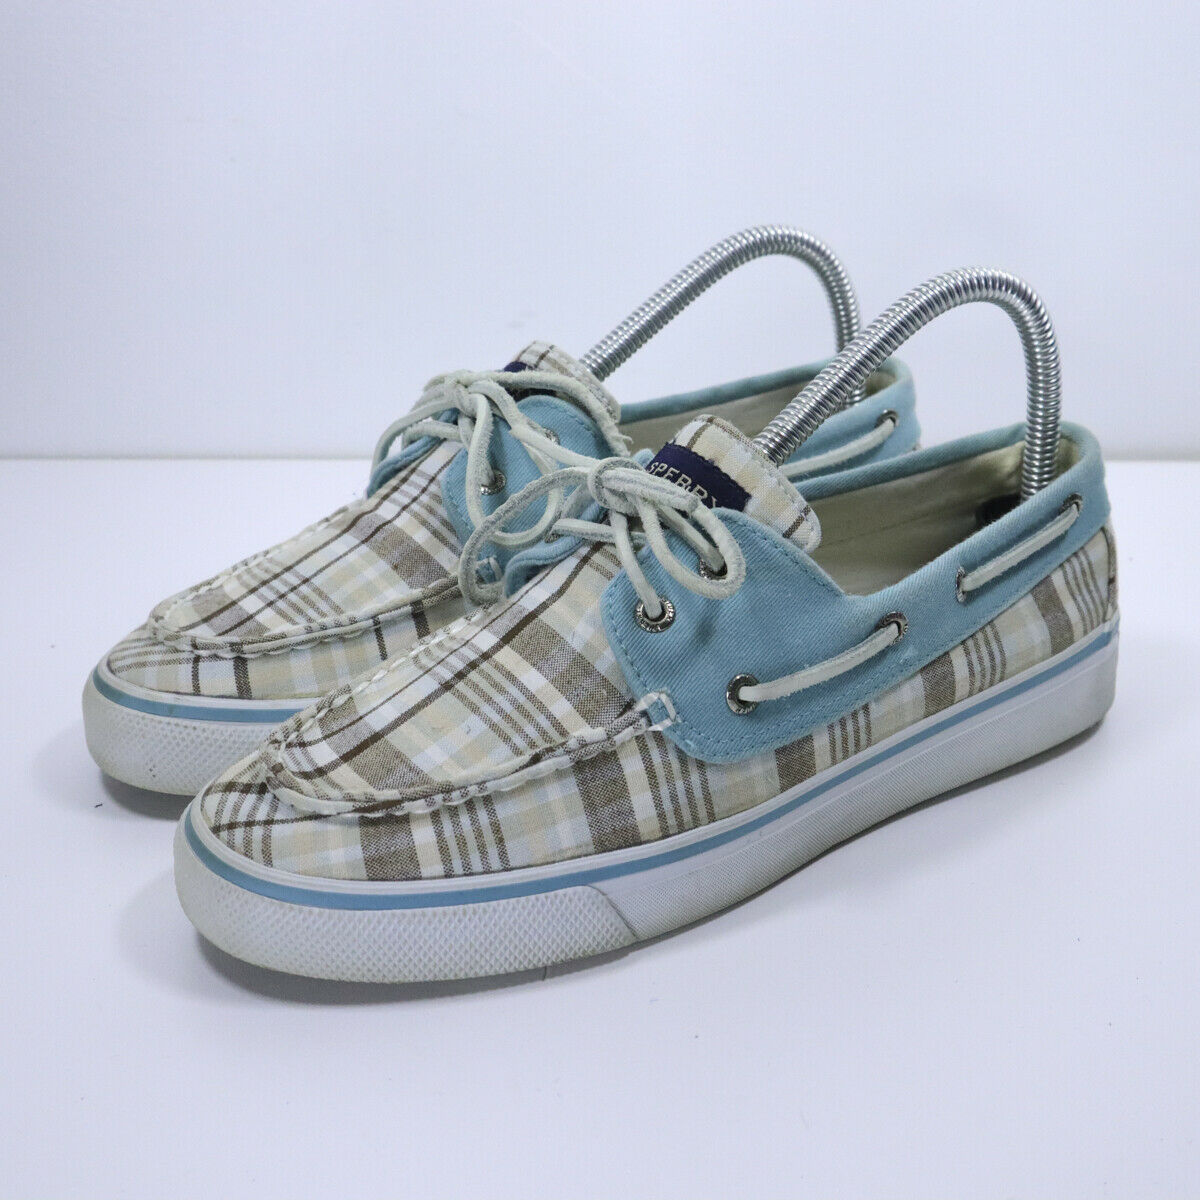 Sperry Top Sider Slip On Boat Shoe Womens Size 8 J8-CH171 White Blue Gray